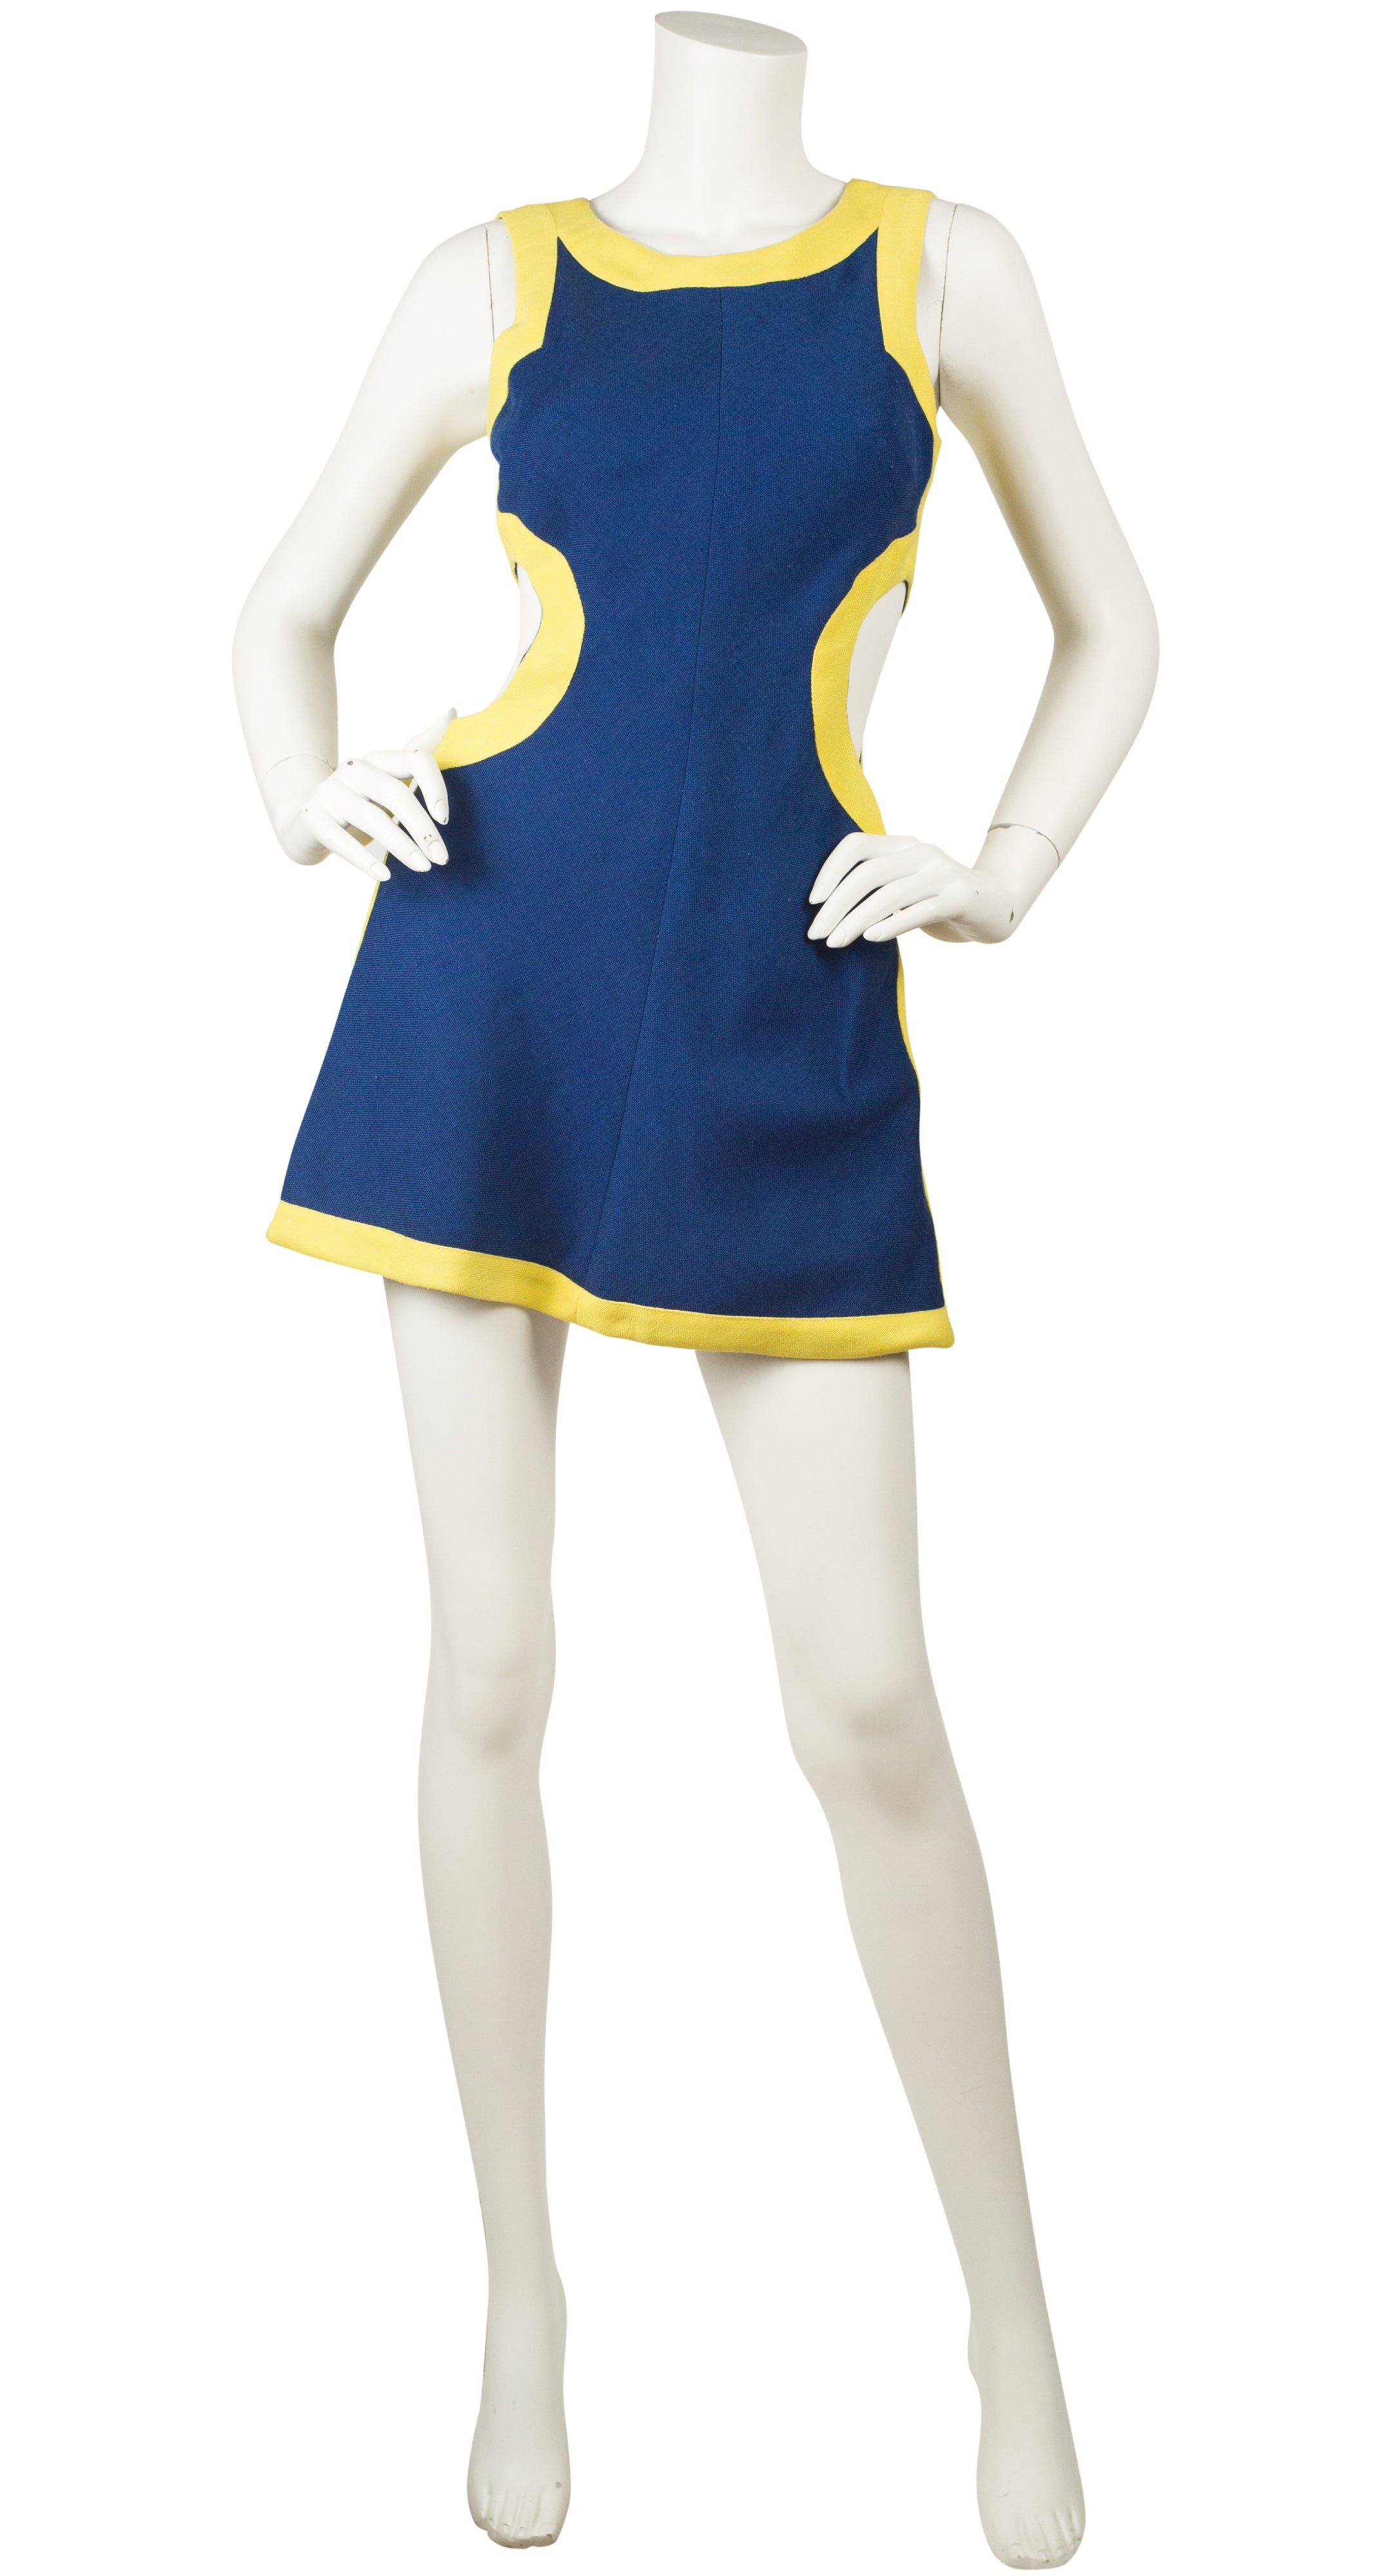 1960s Mod Blue & Yellow Cut-Out Mini Dress